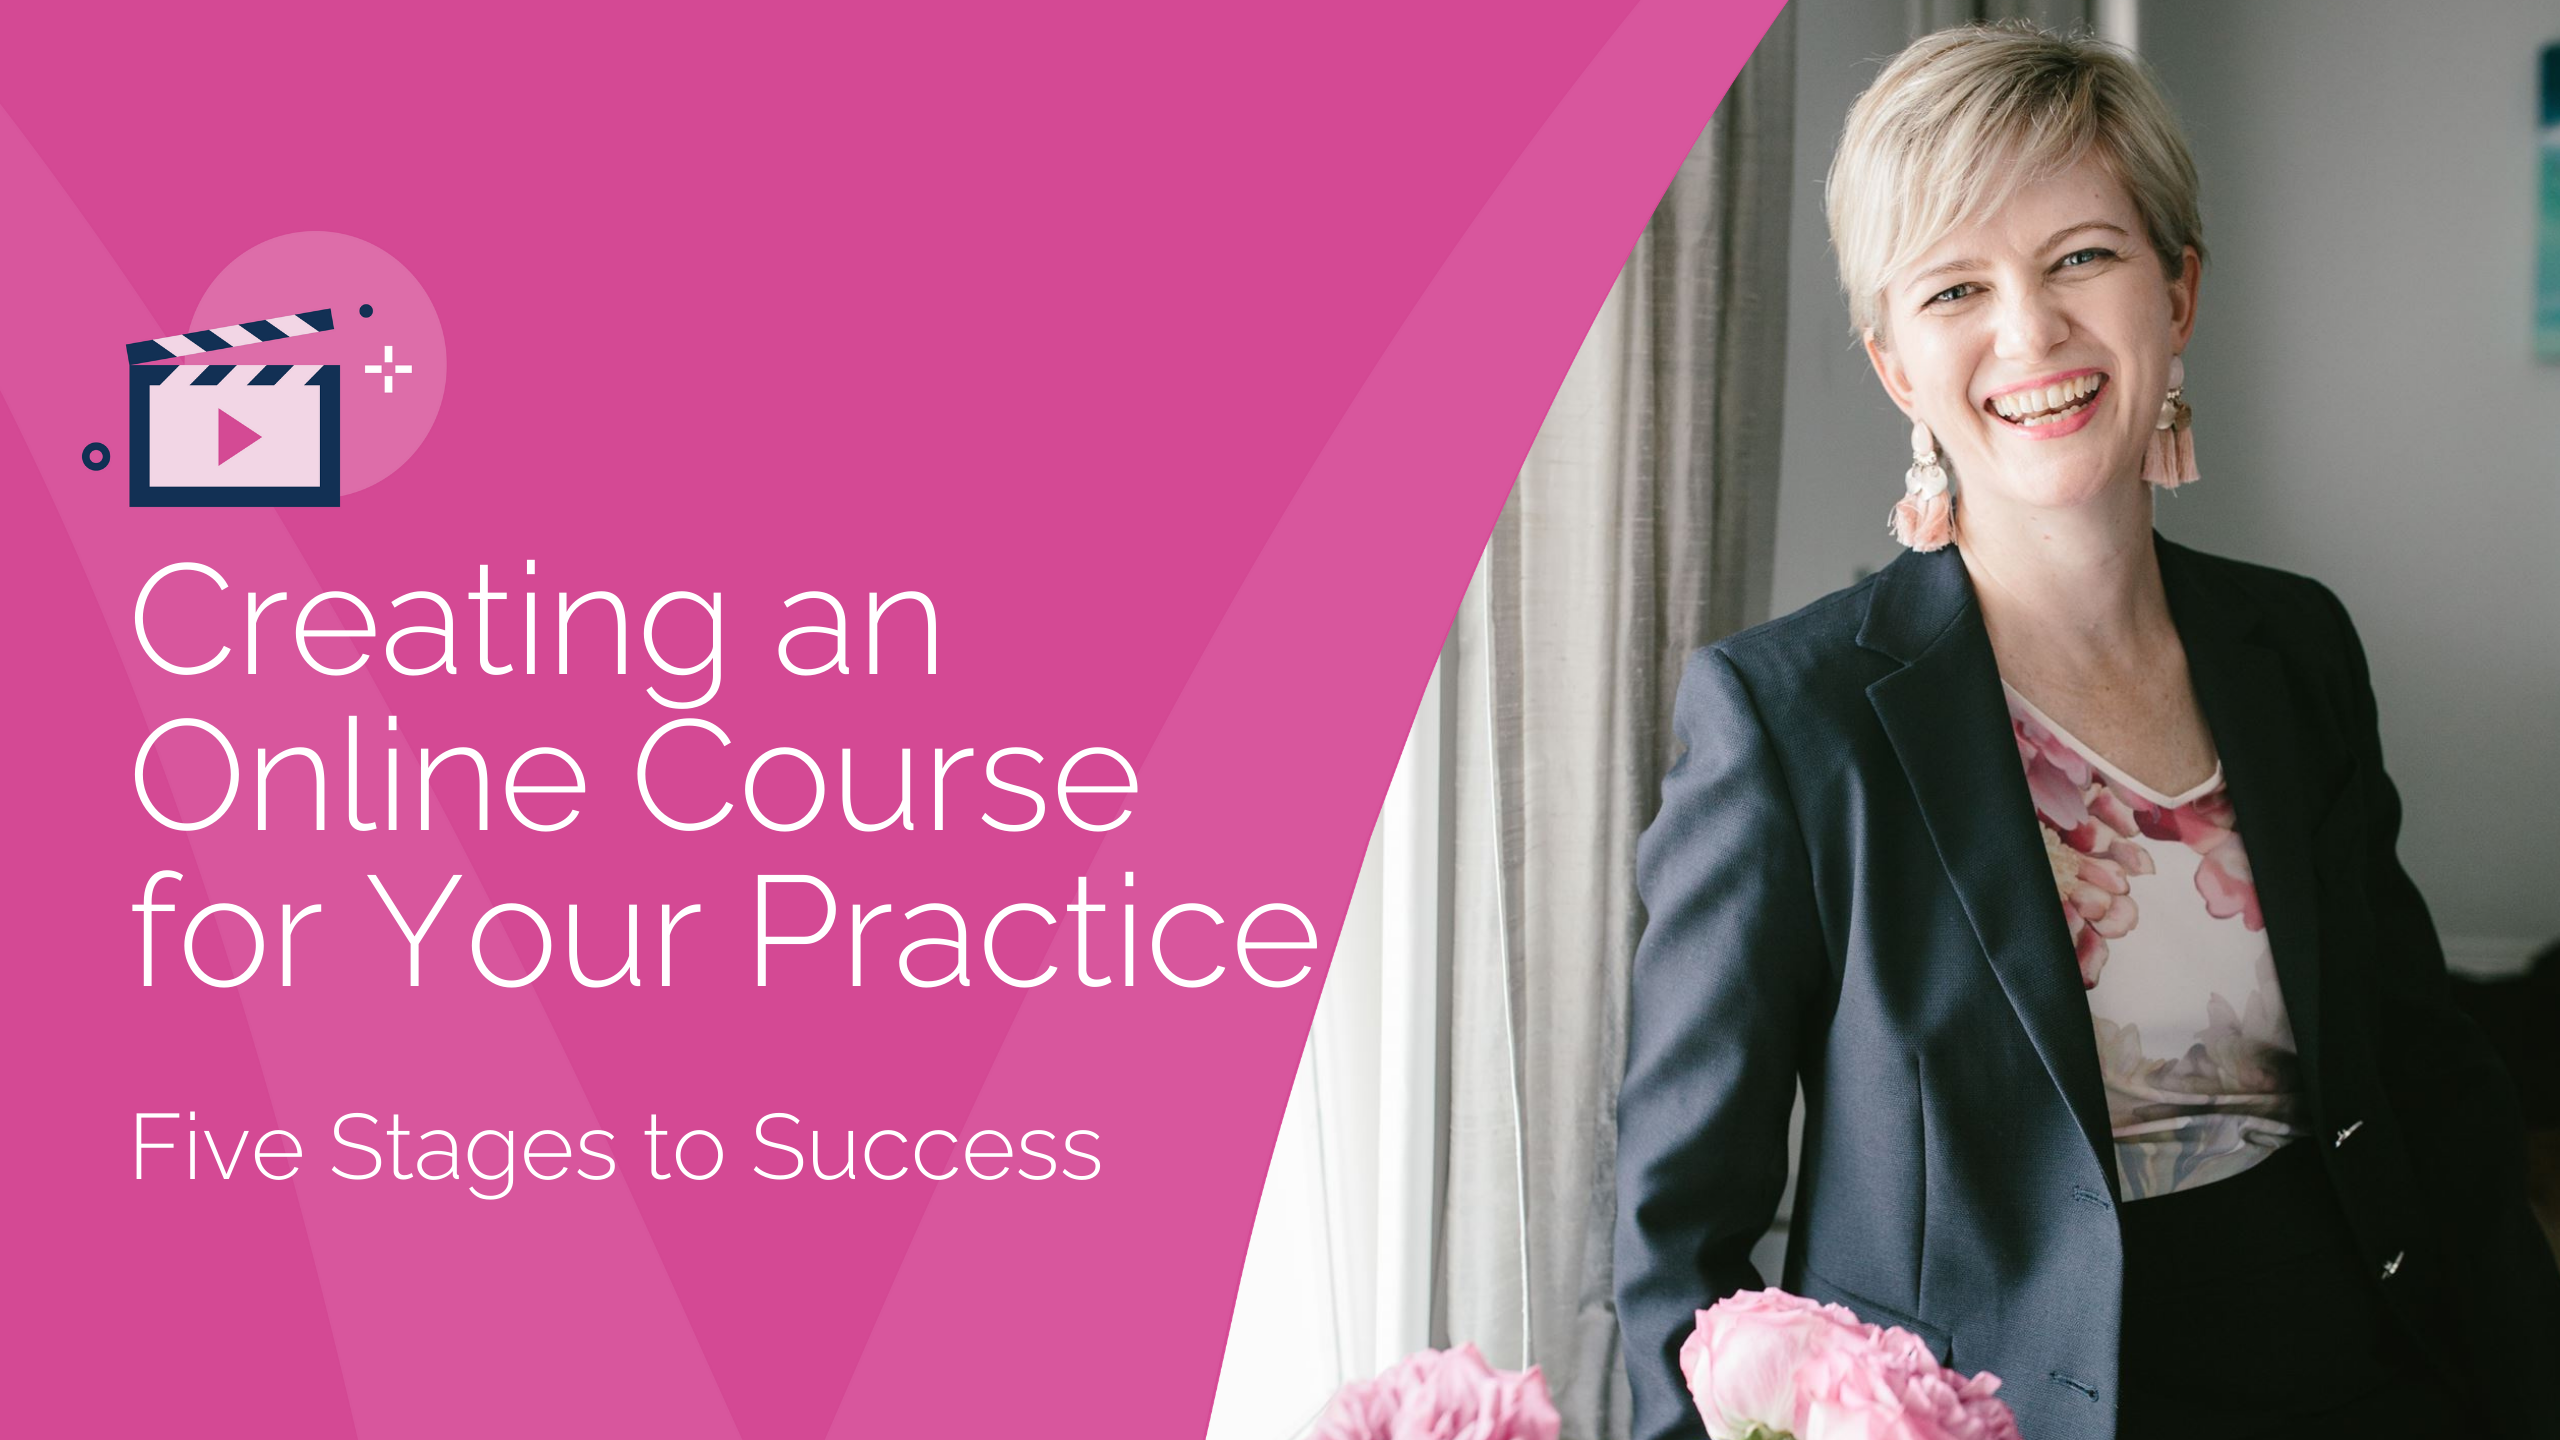 Creating an online course for your practice Market Savvy